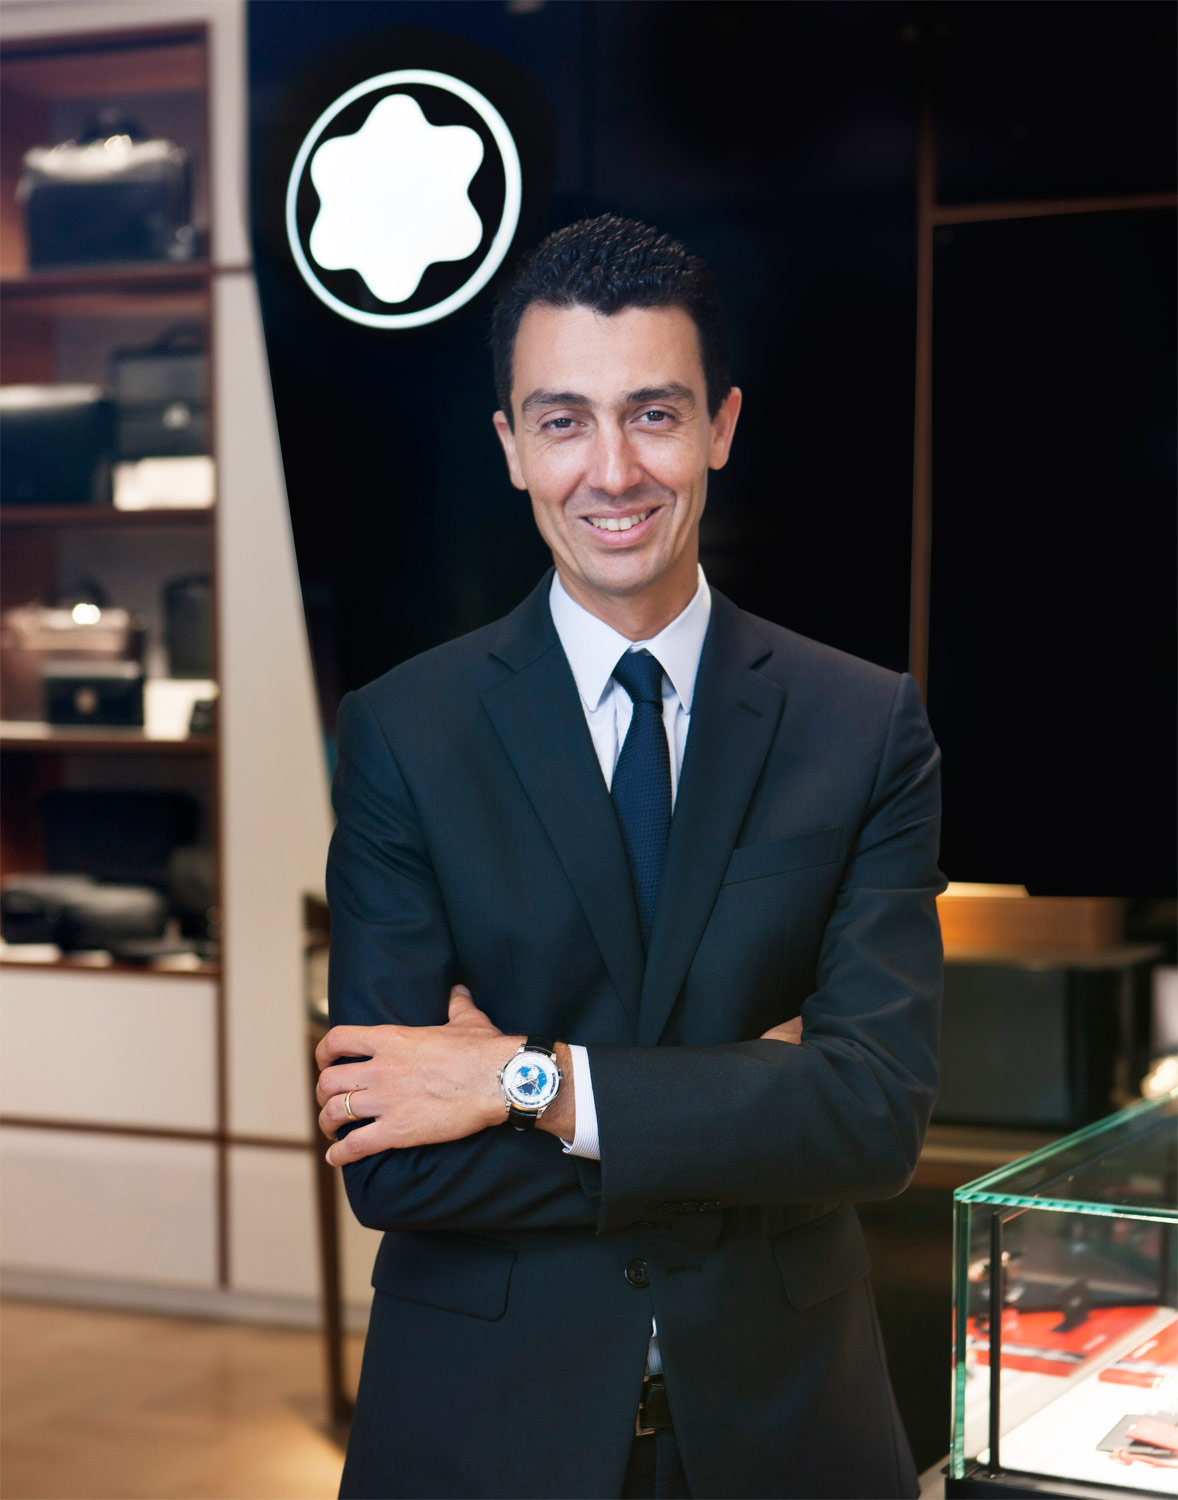 Julien Renard, the President of Montblanc Asia Pacific